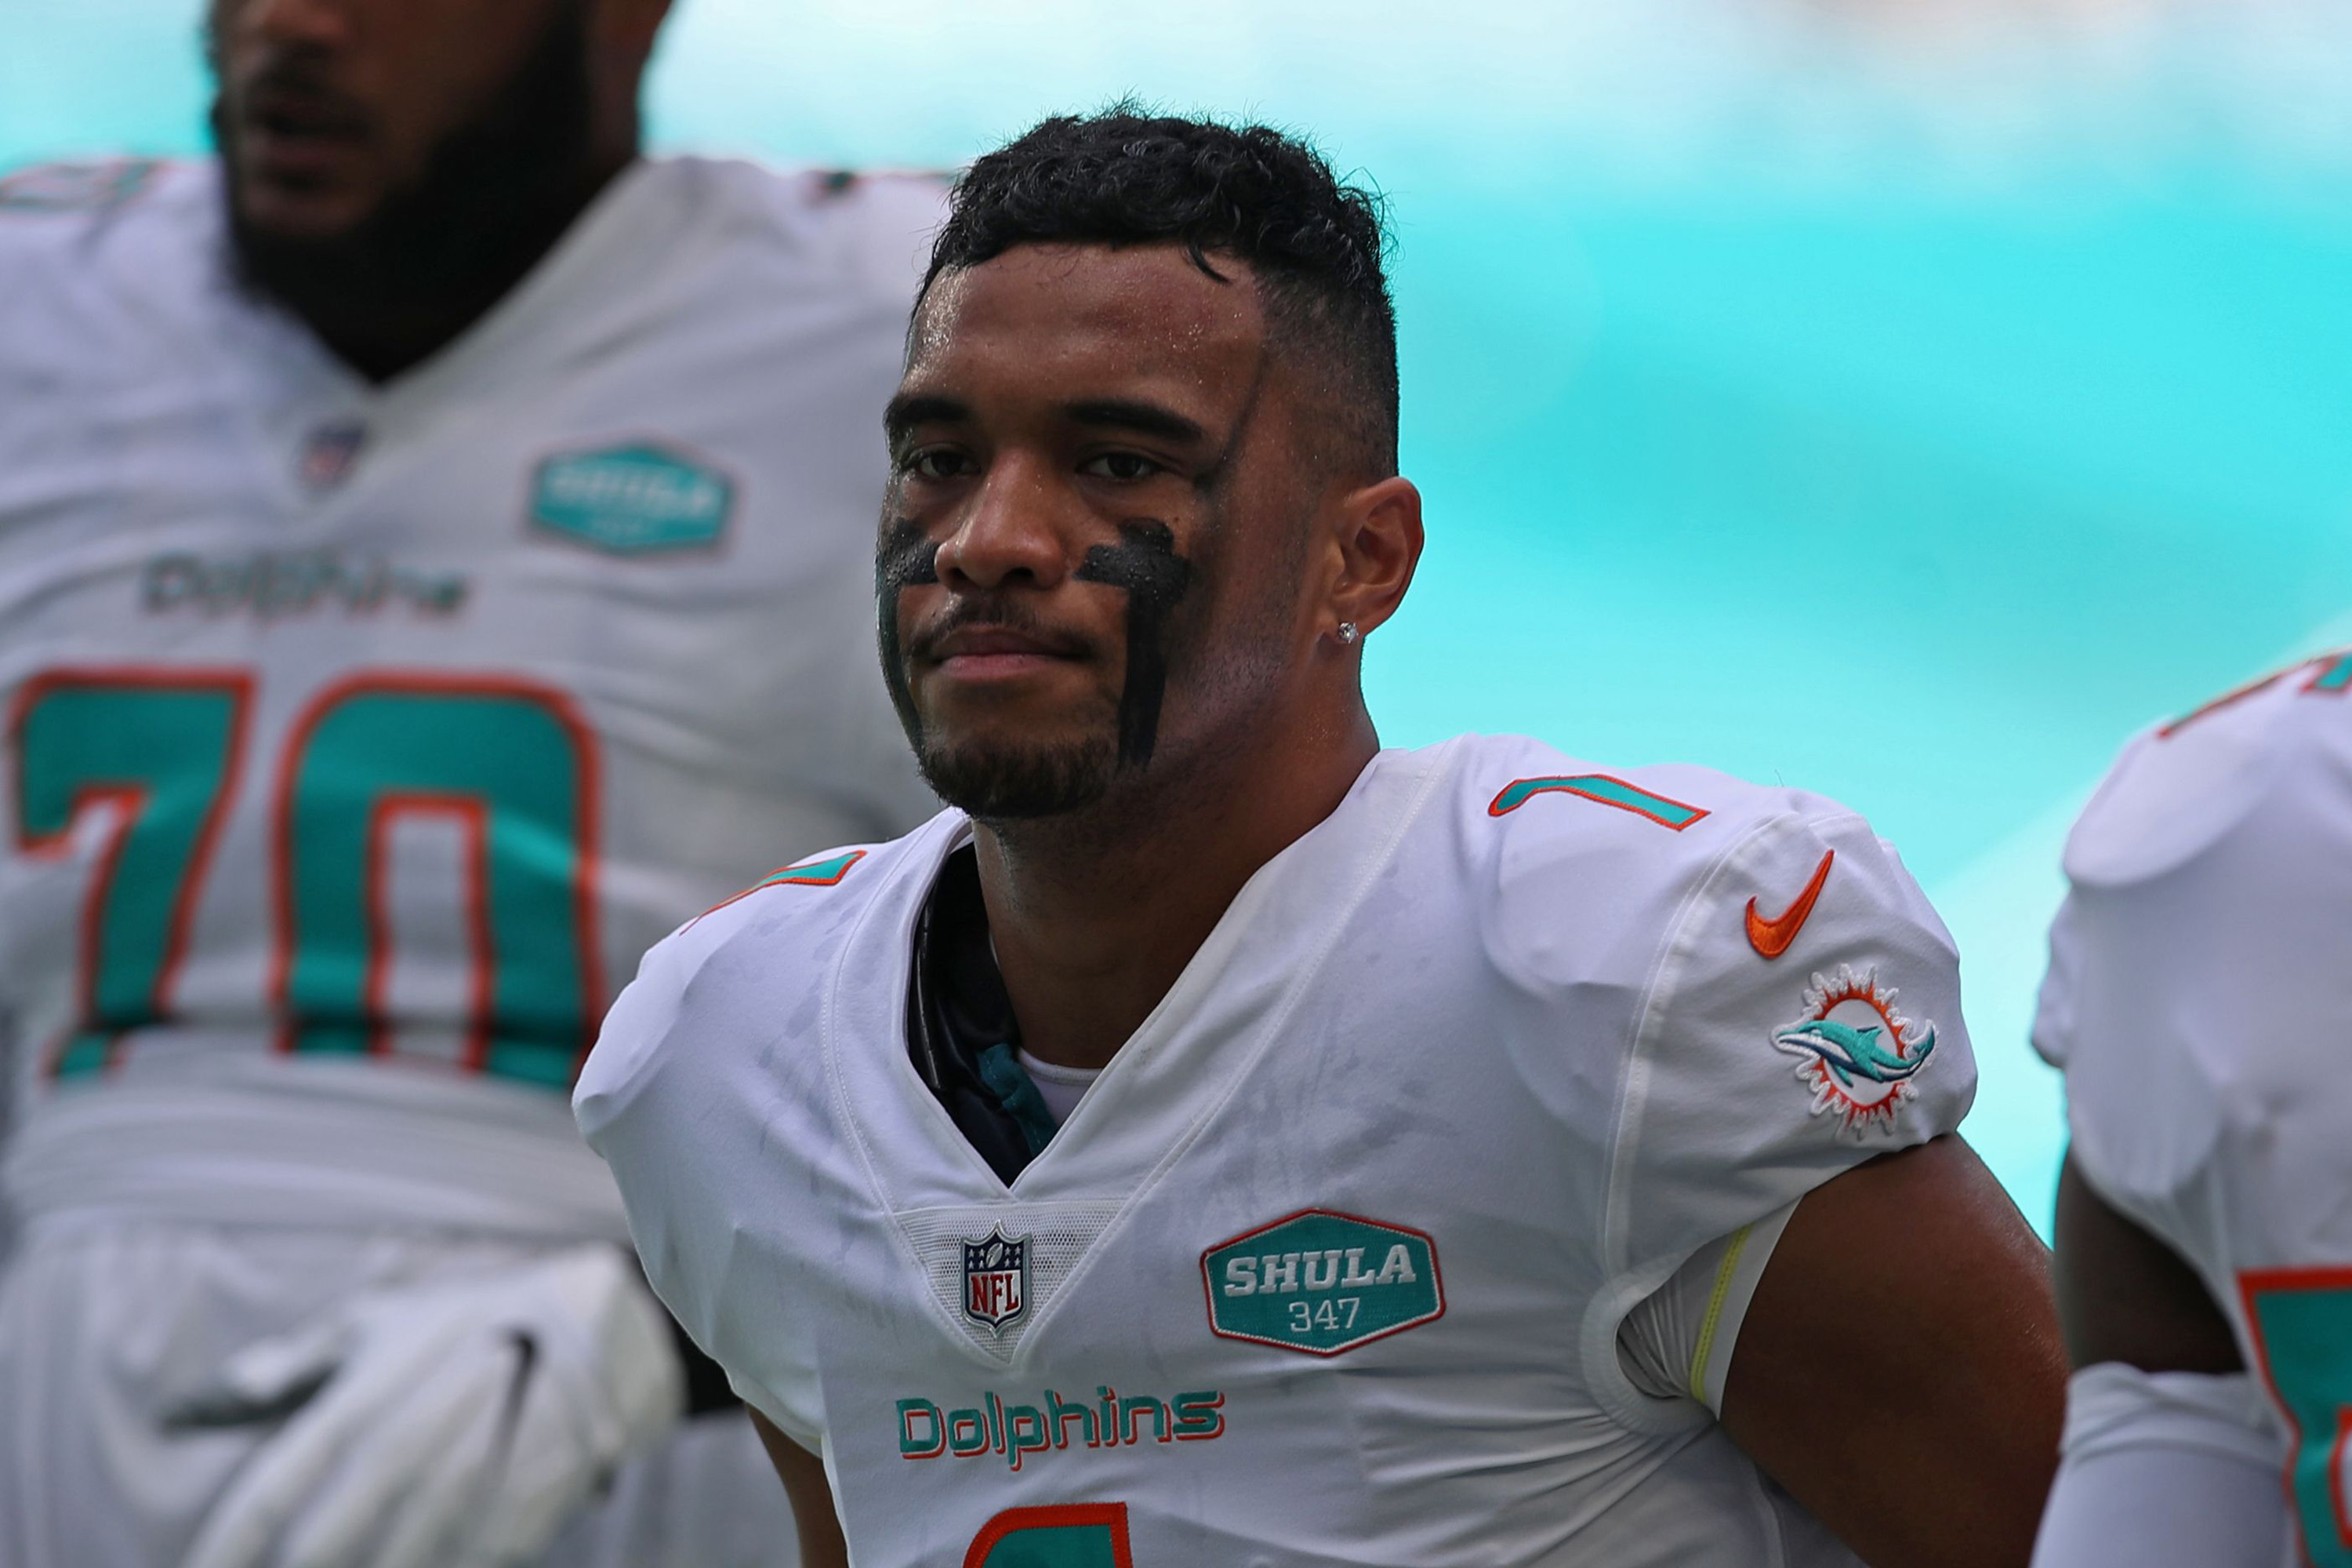 Miami Dolphins quarterback Tua Tagovailoa before a game